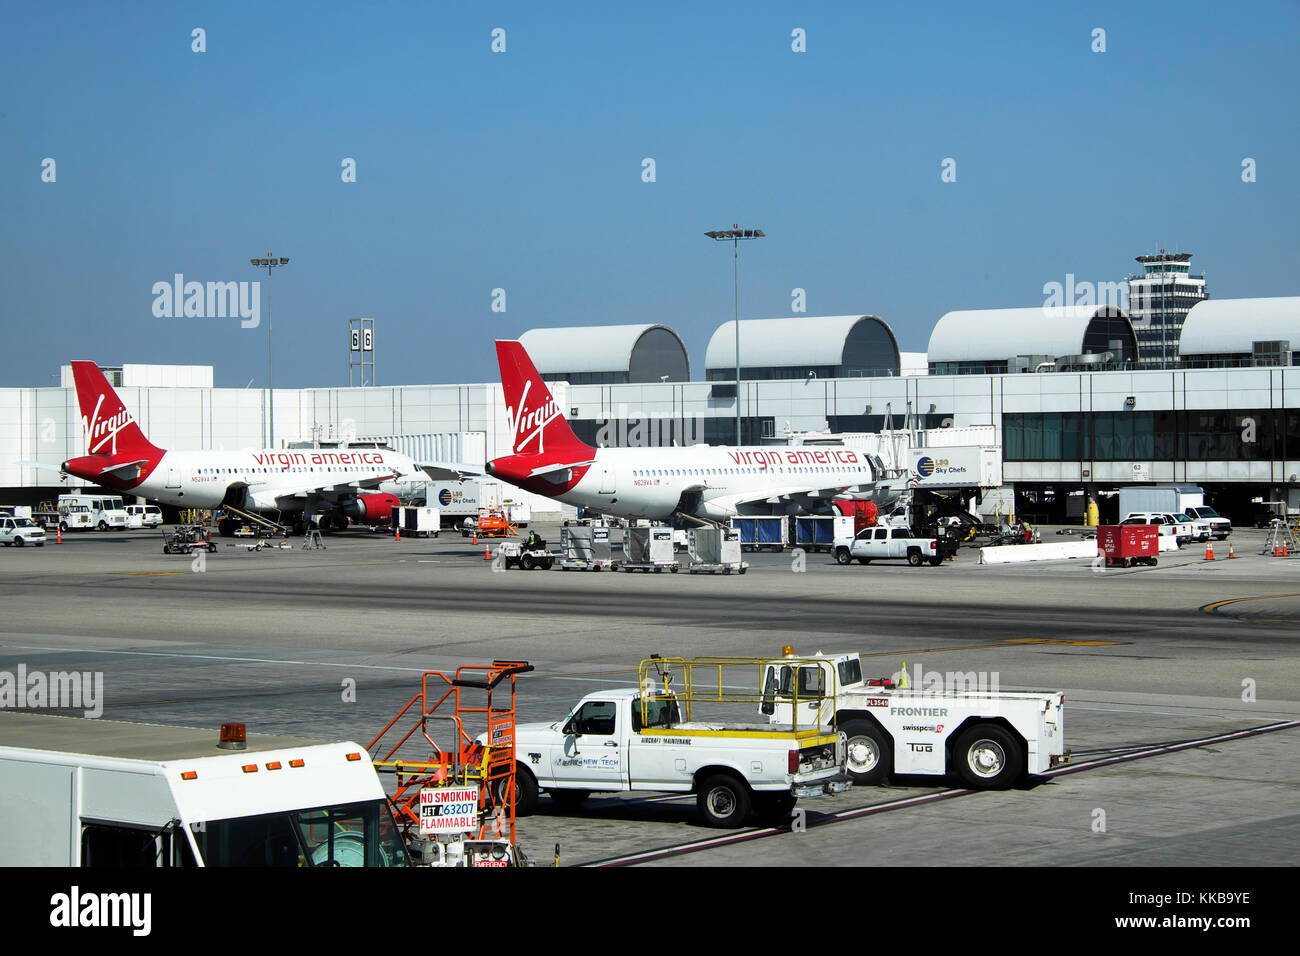 Virgin America planes on the tarmac being serviced preparing for departure at LAX airport in Los Angeles, California - Stock Image